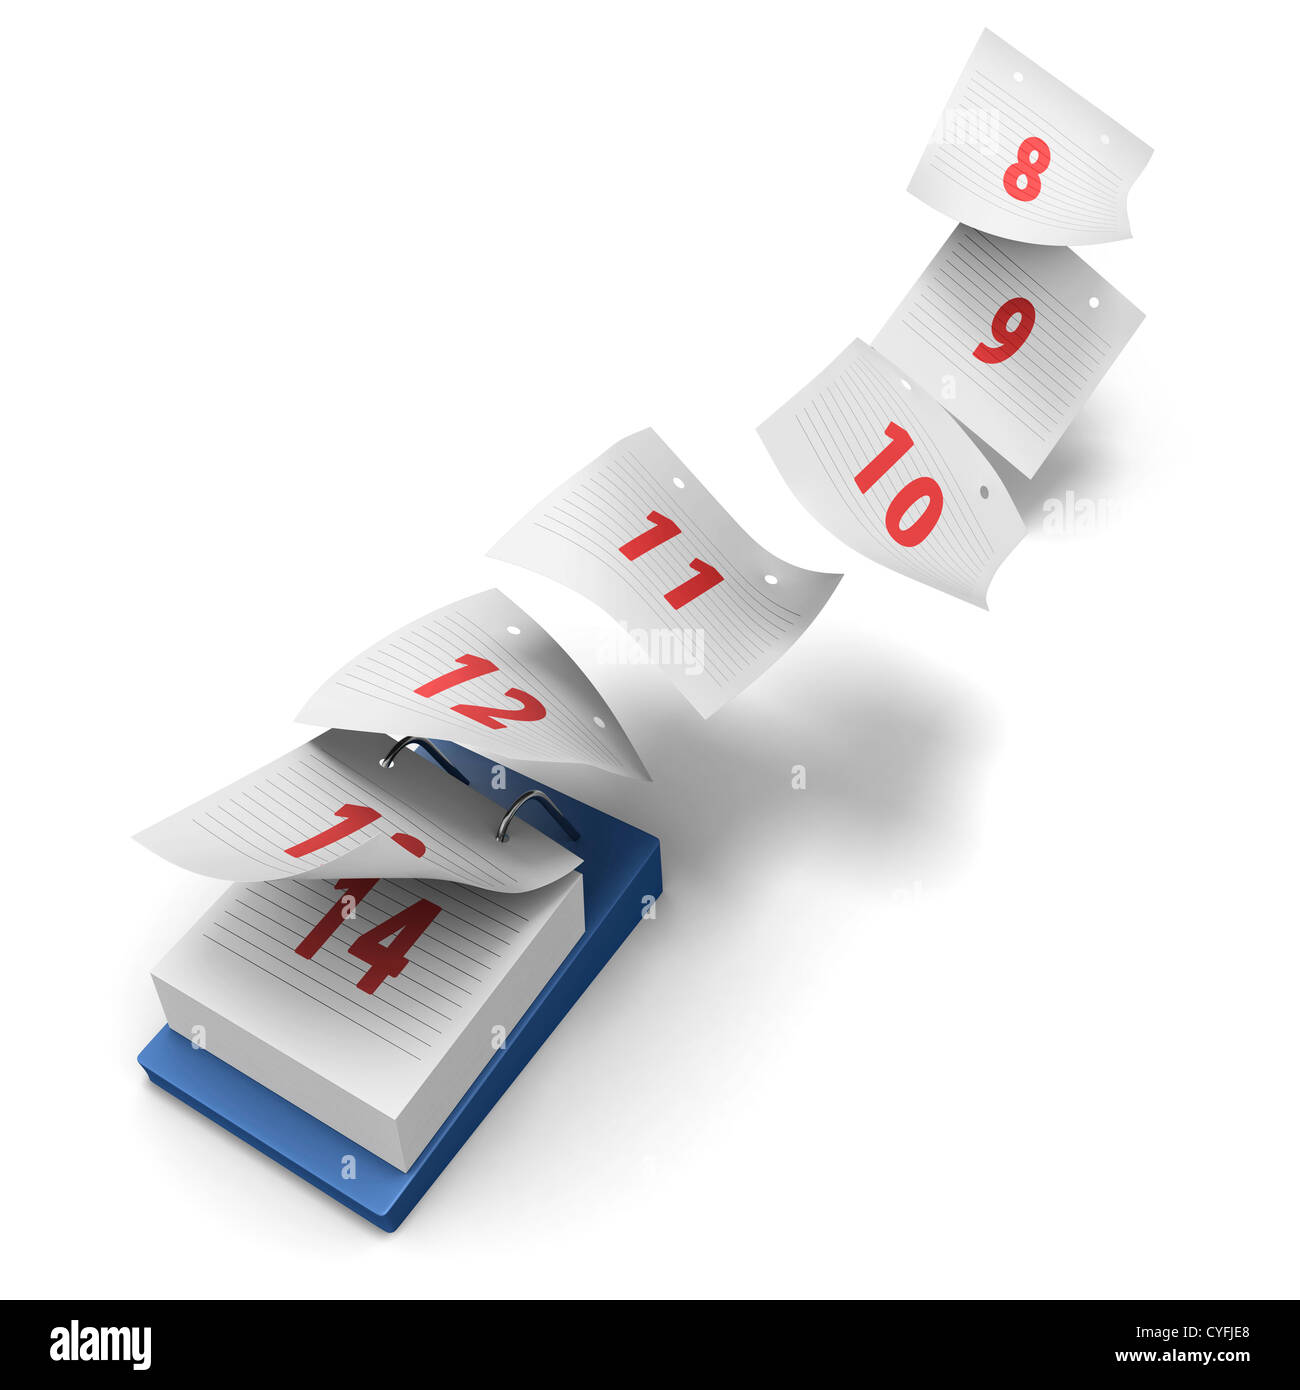 https://c8.alamy.com/comp/CYFJE8/desktop-calendar-showing-how-7-days-fly-by-on-white-background-without-CYFJE8.jpg